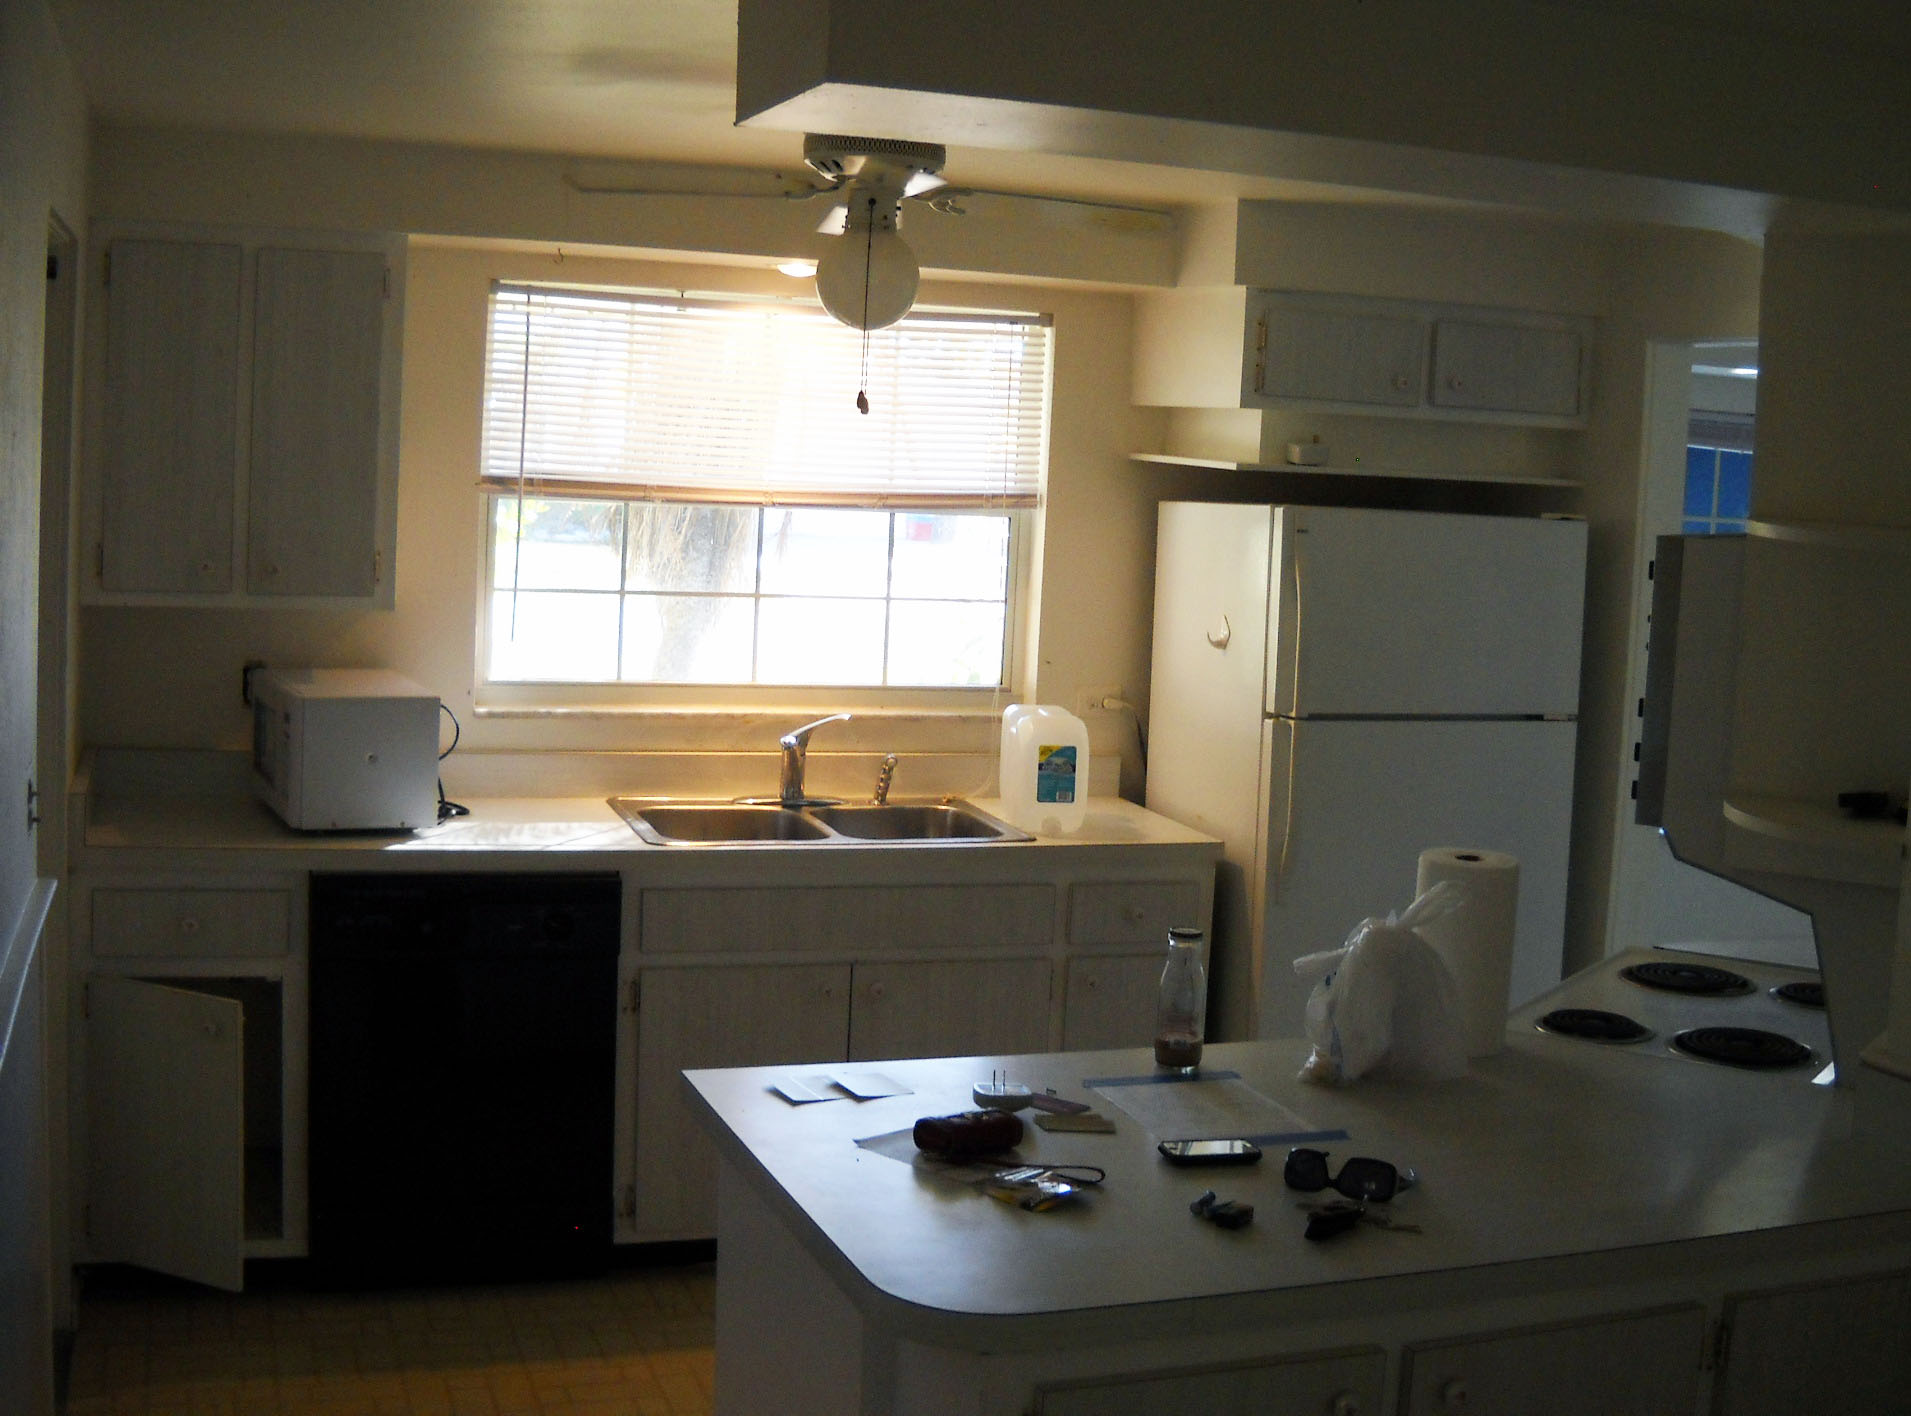 4a_kitchen before.jpg